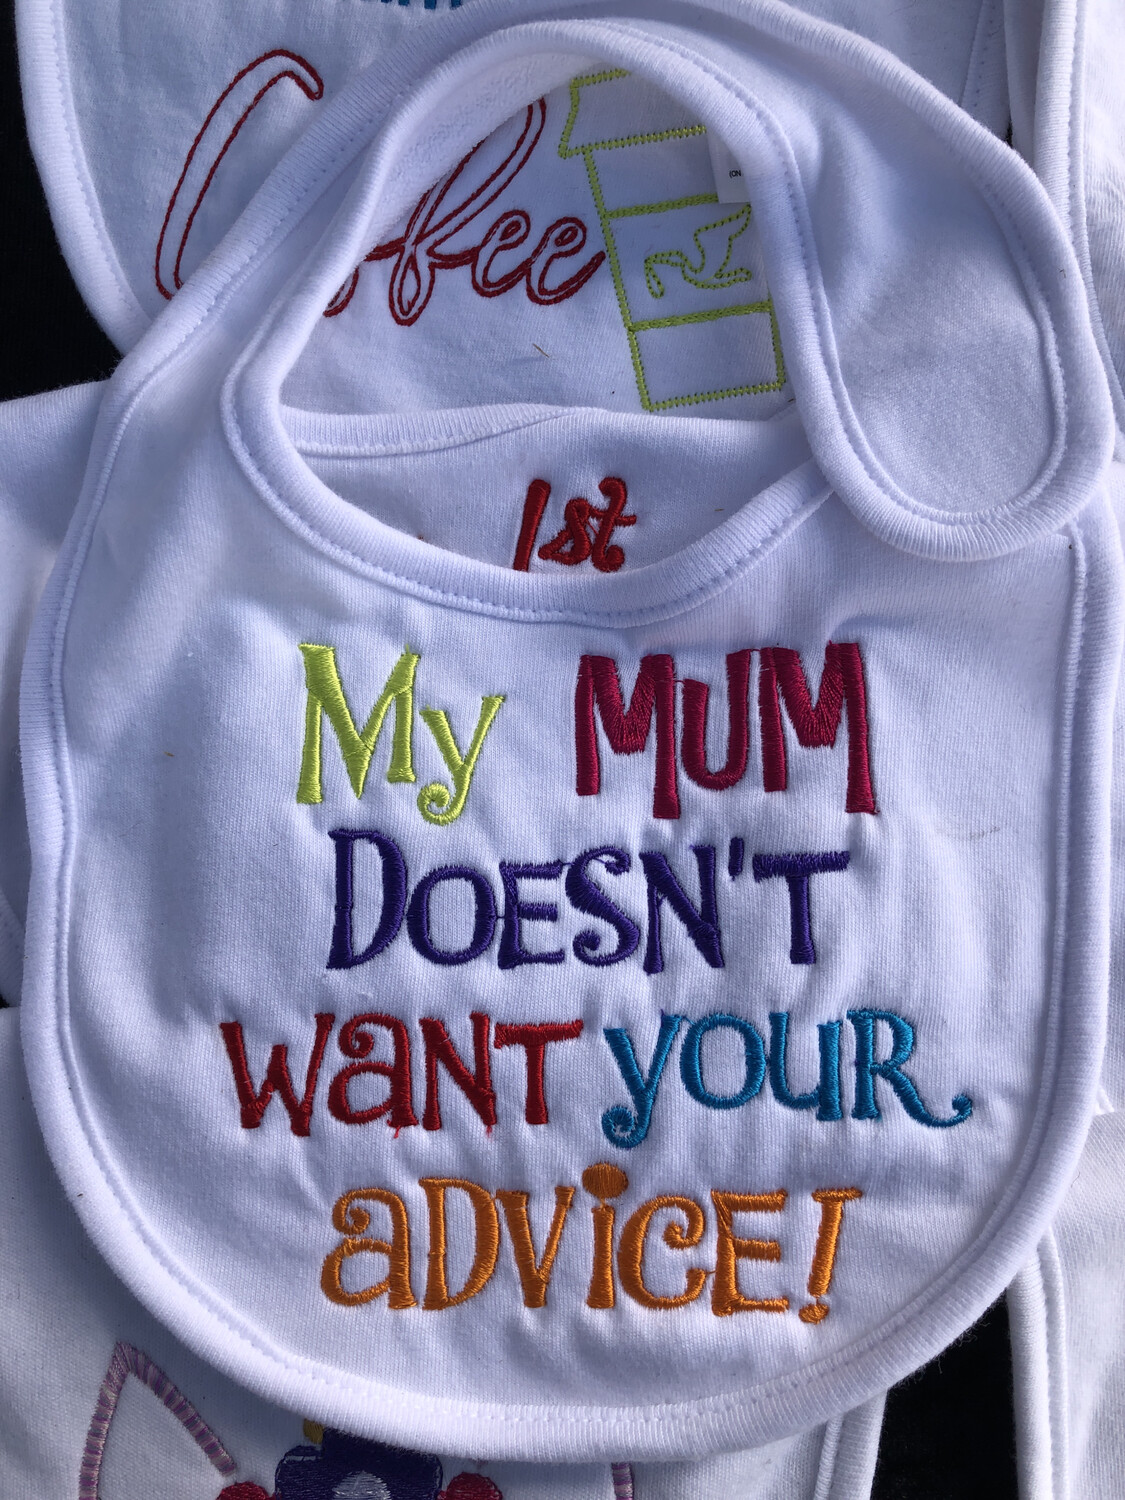 My Mum Doesn't Want Your Advice  Bib